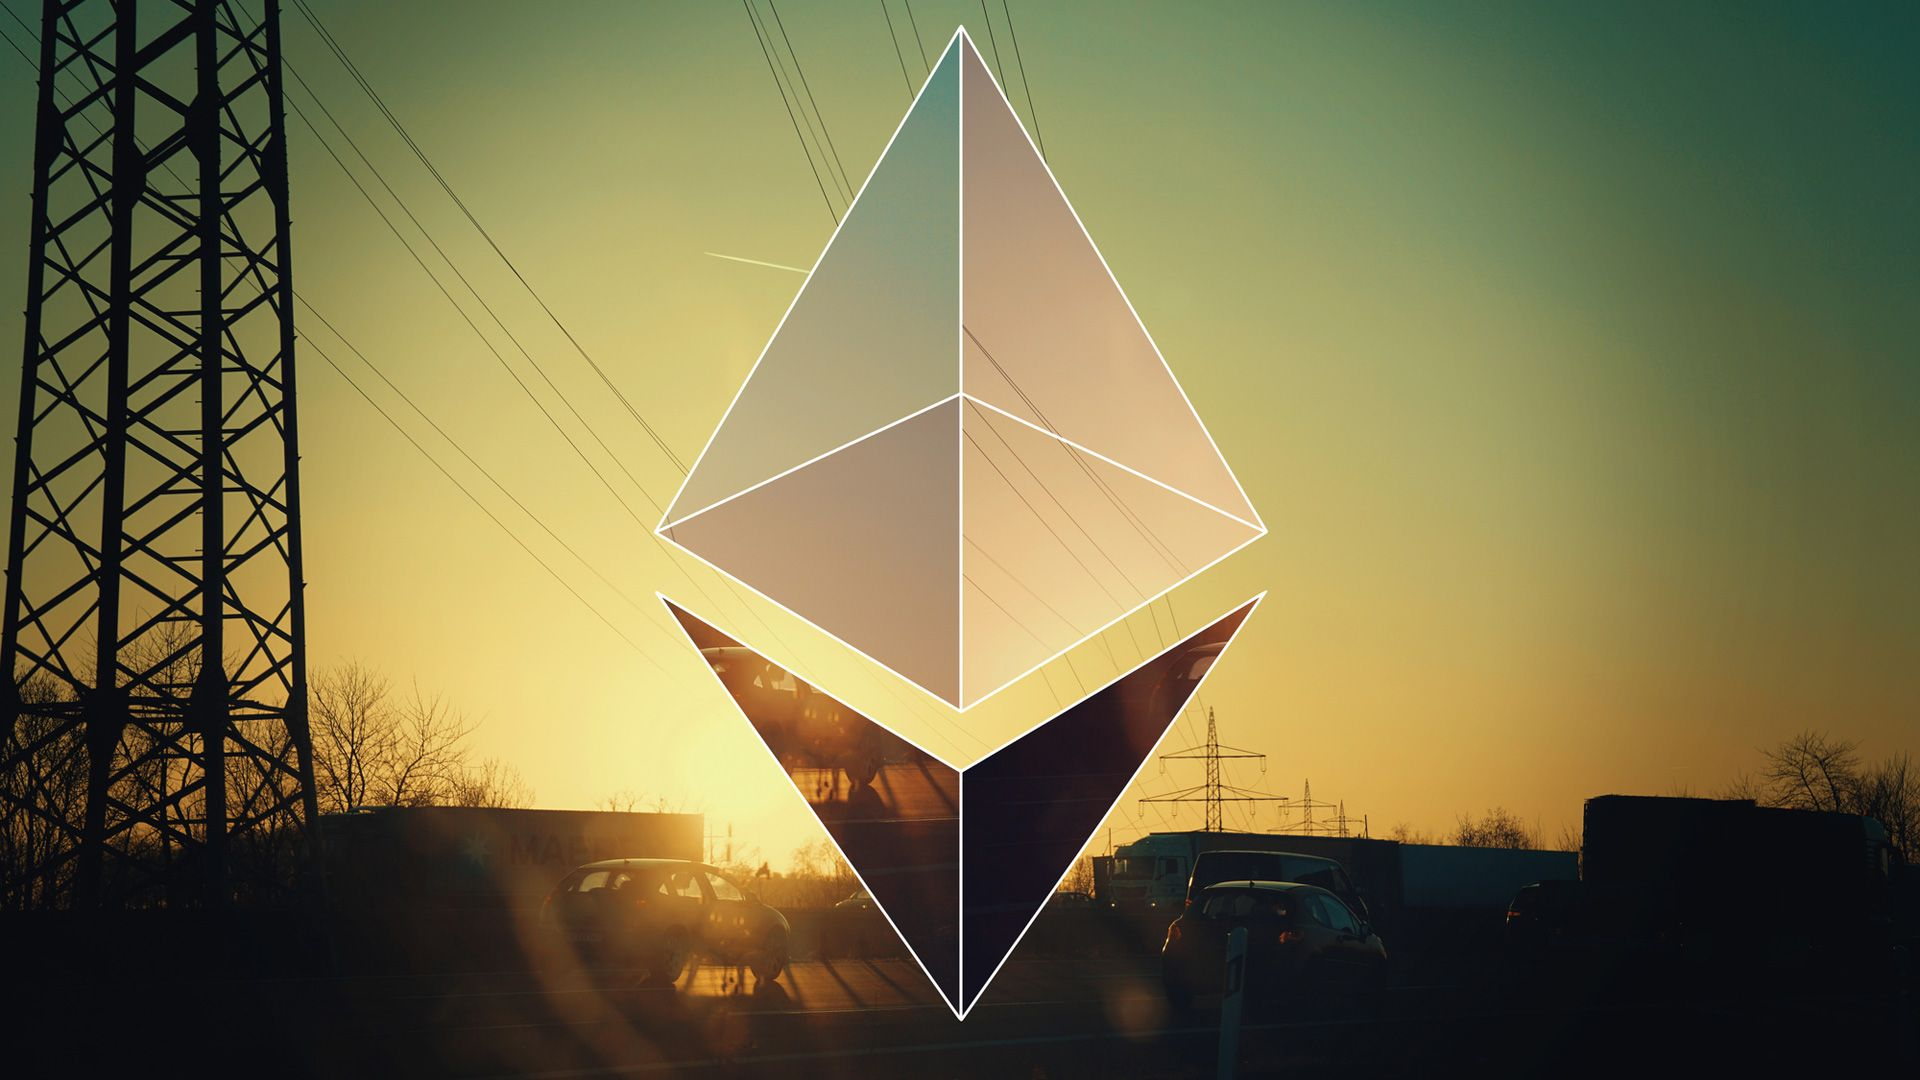 You can use Ethereum cryptocurrency calculator on this